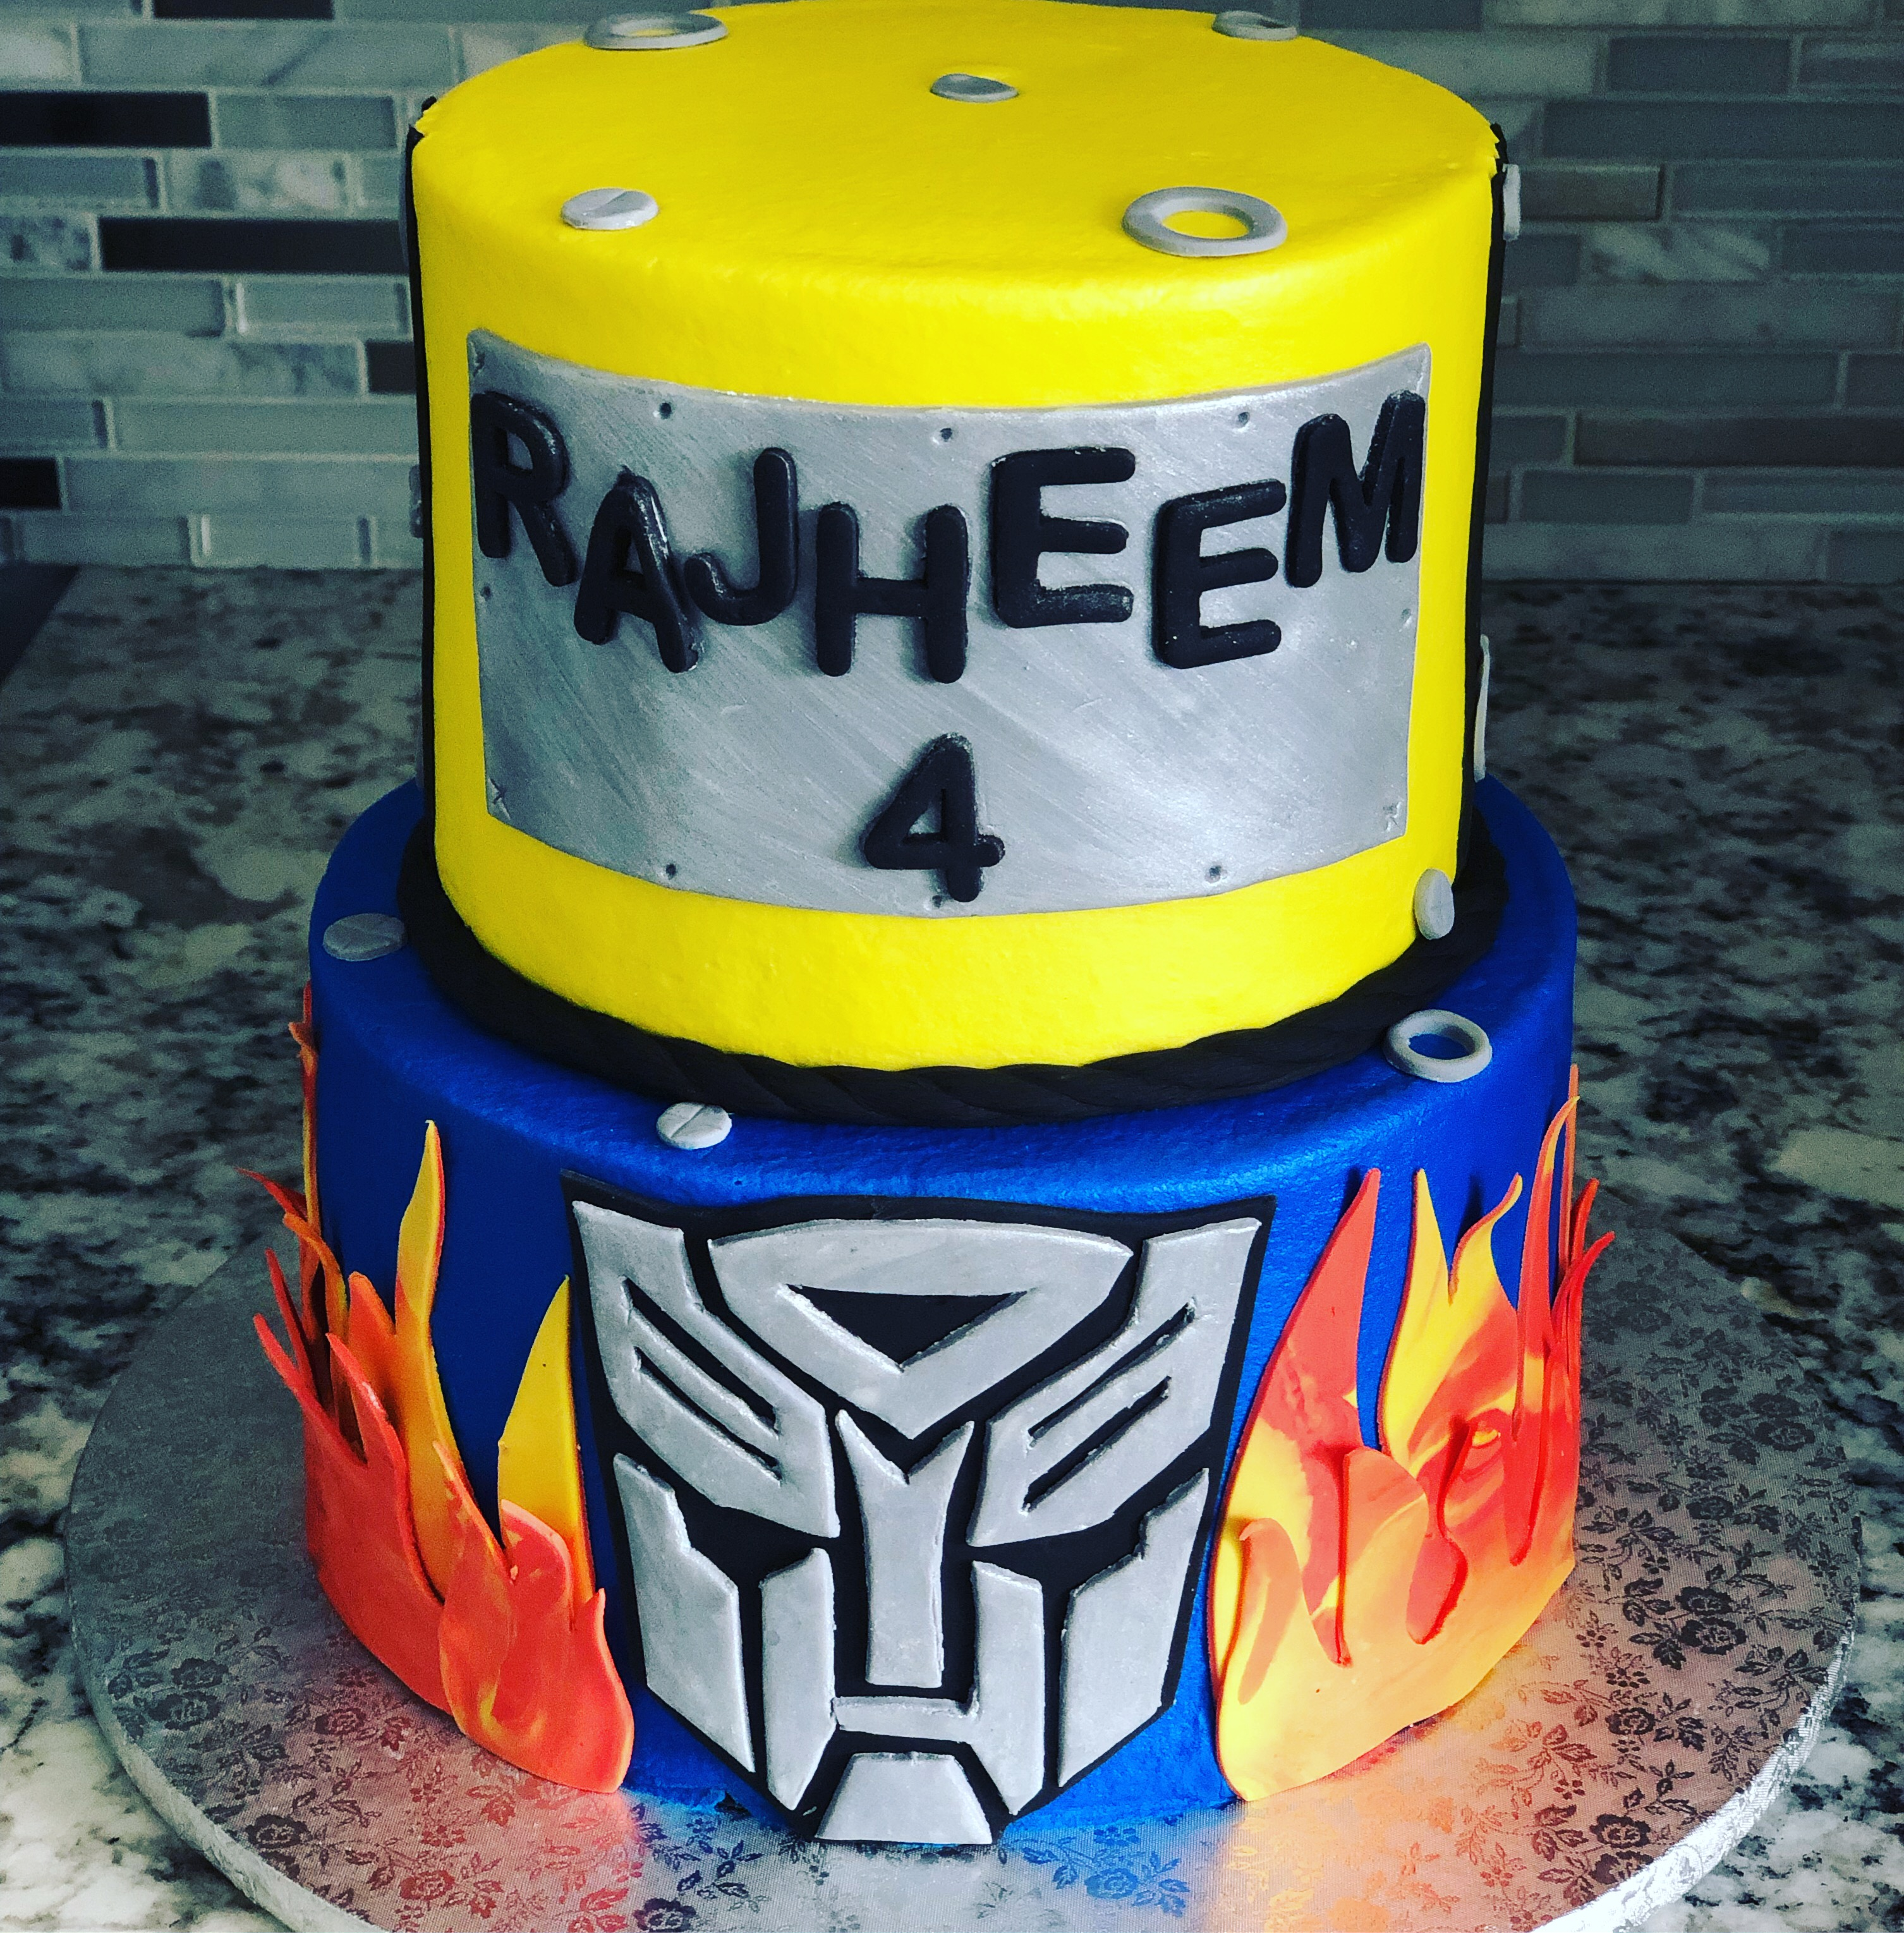 Transformers yellow and blue tiers with fire